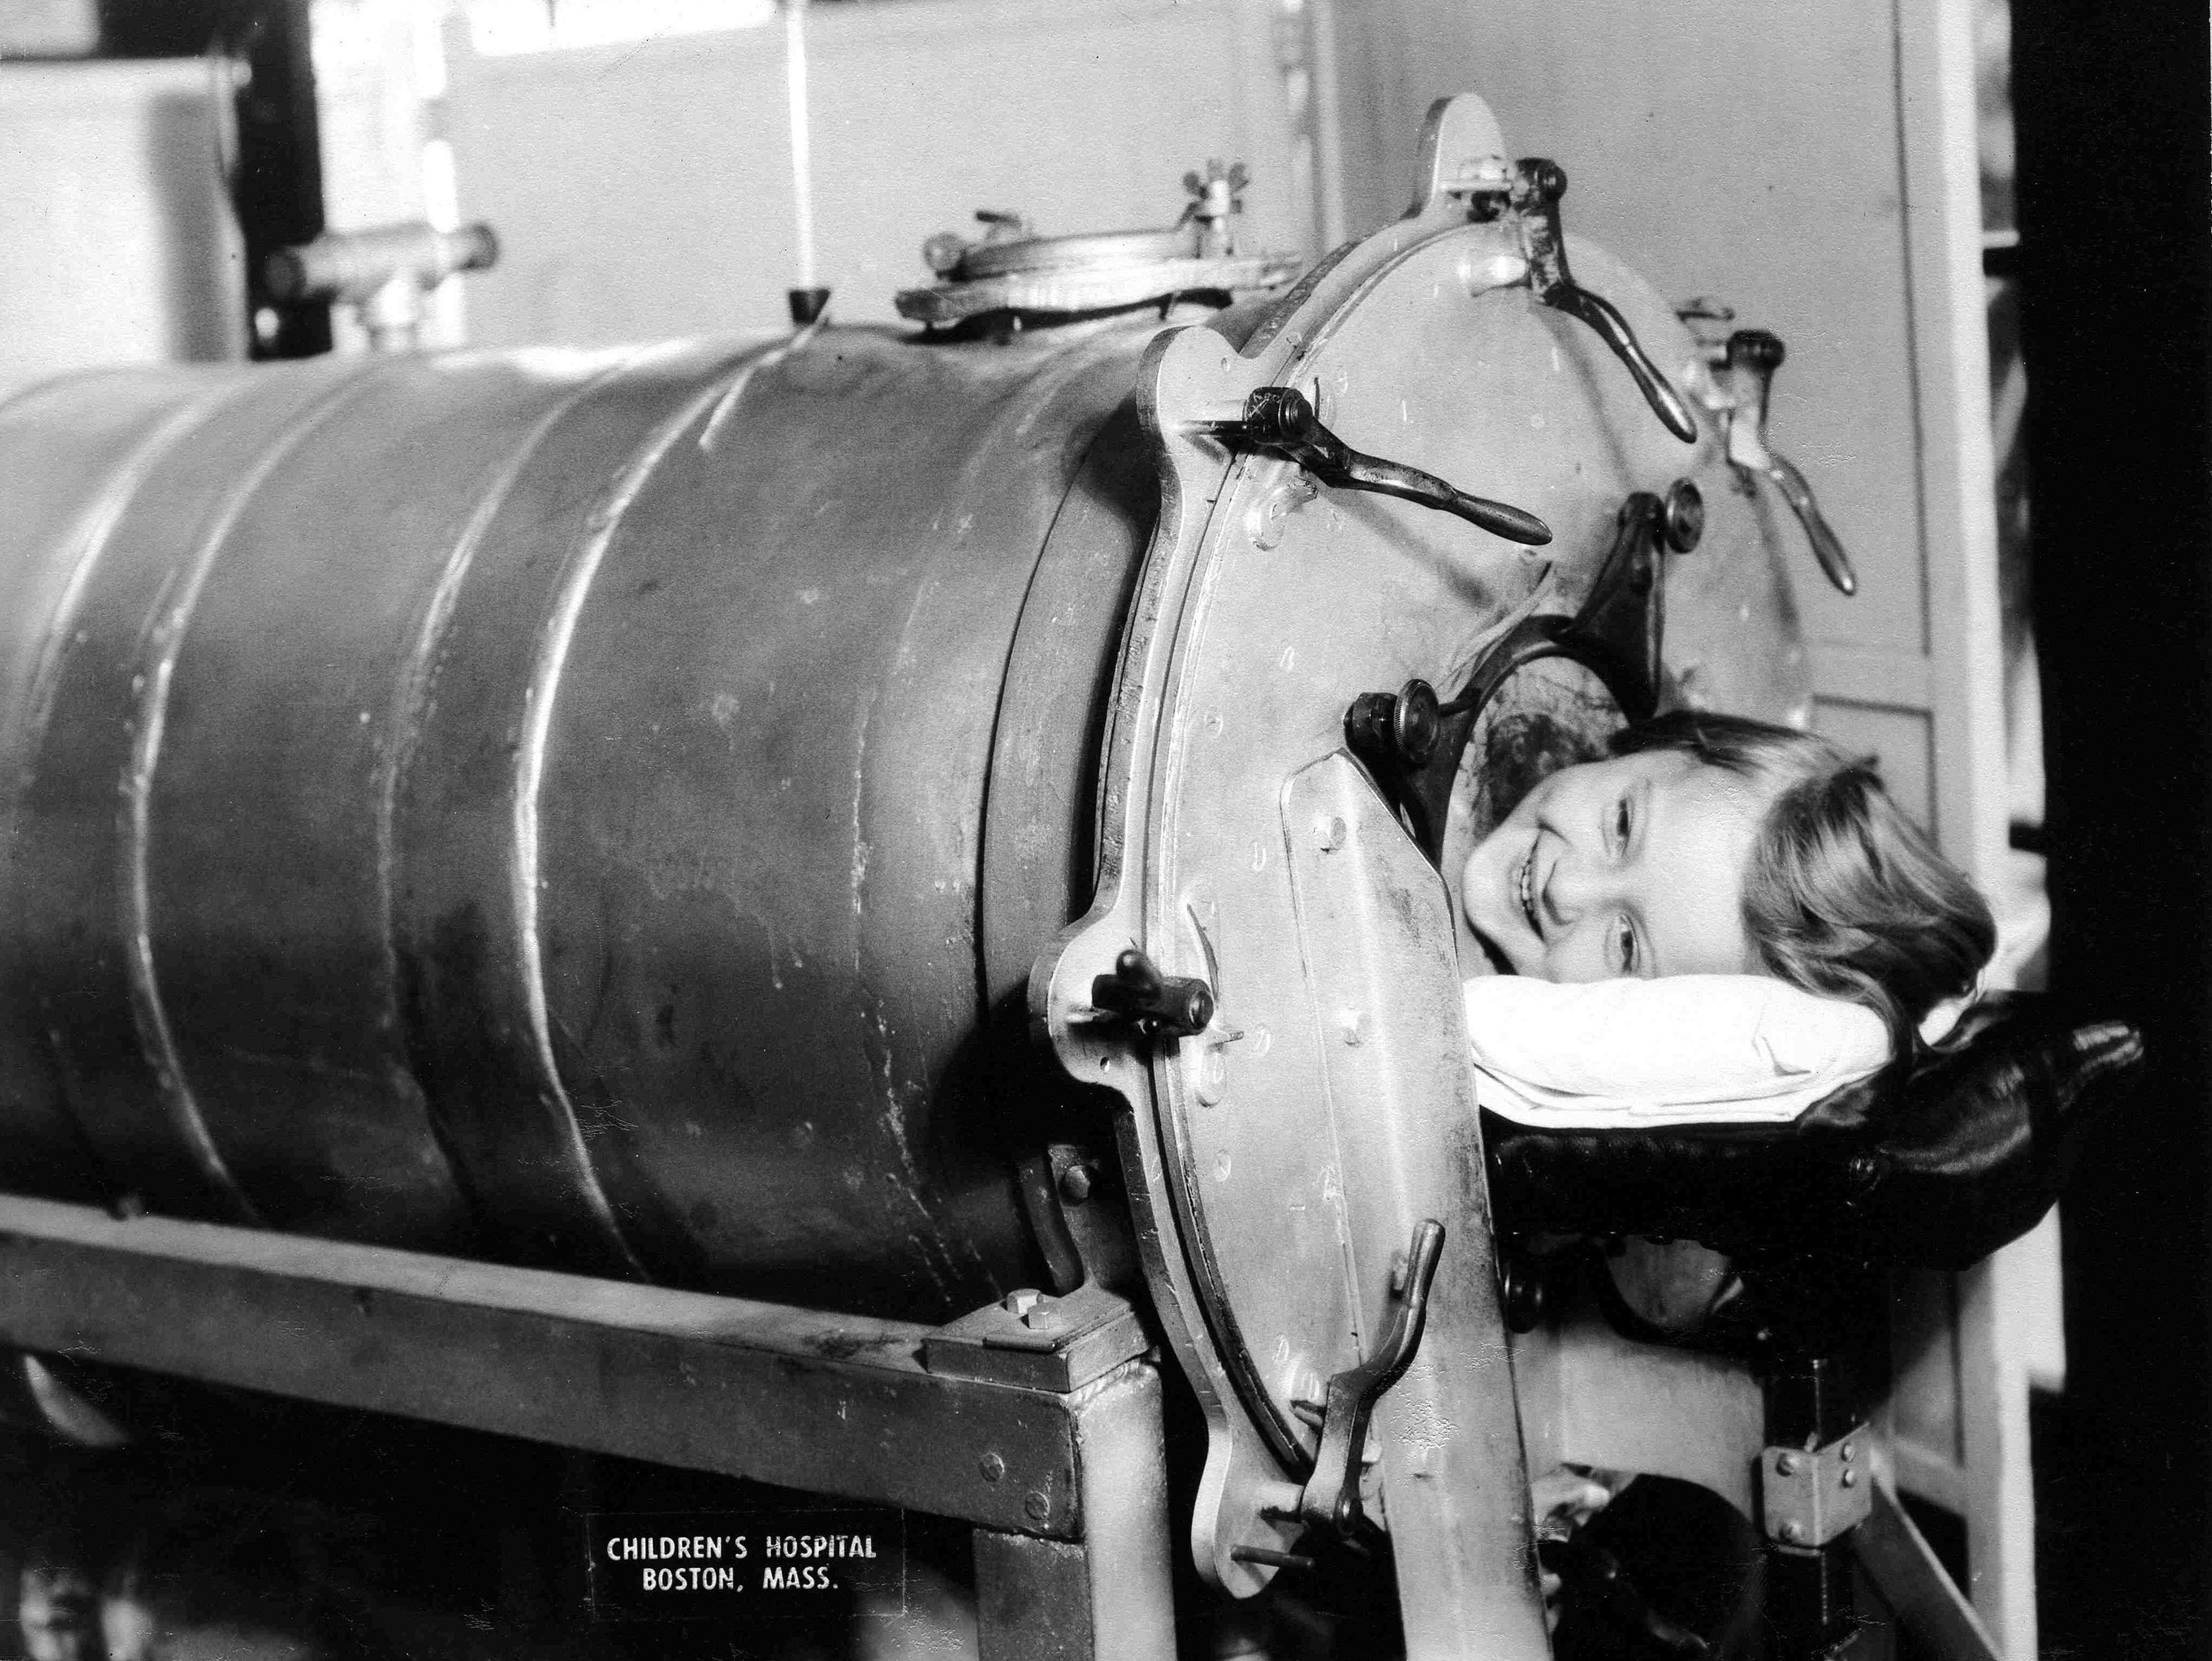 Many polio victims couldn't breathe on their own because of paralysis in their chest muscles. The iron lung -- a simple, air-tight chamber that regulates air pressure -- kept patients breathing until the paralysis passed. At the peak of the epidemic, rows of iron lung ventilators filled hospital rooms.